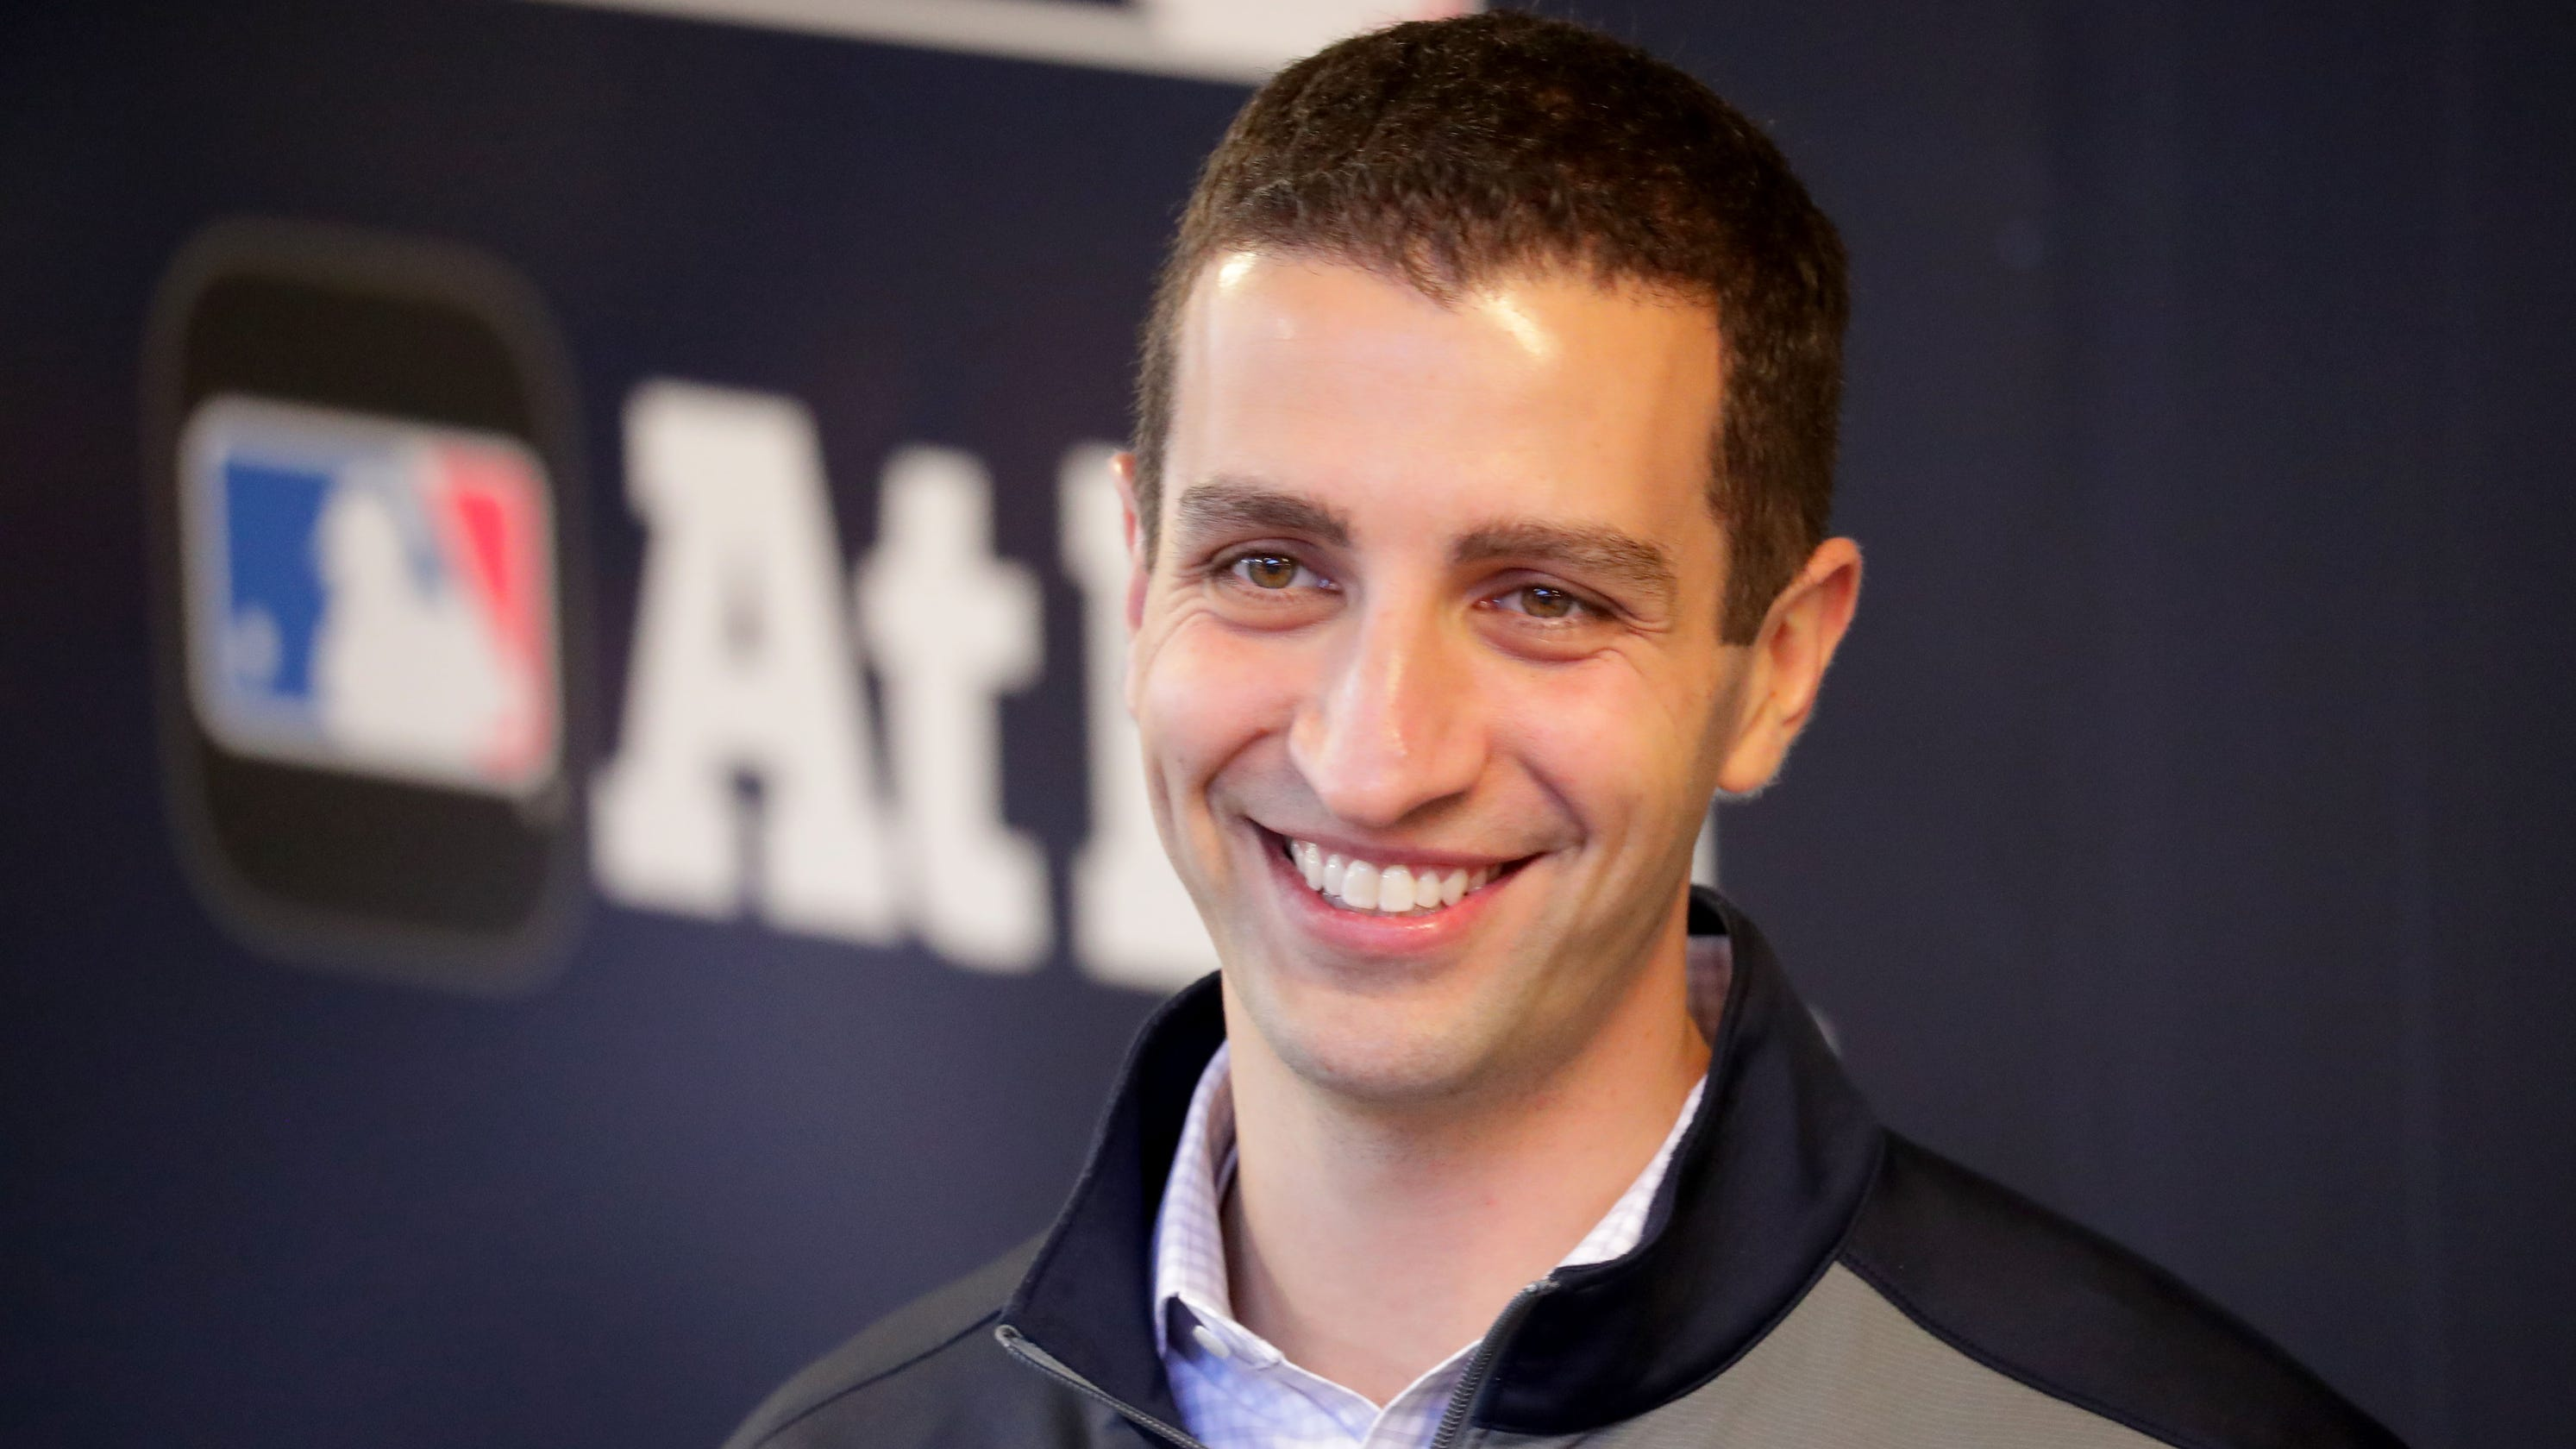 With team president David Stearns on hand, Brewers continue their outreach during pandemic